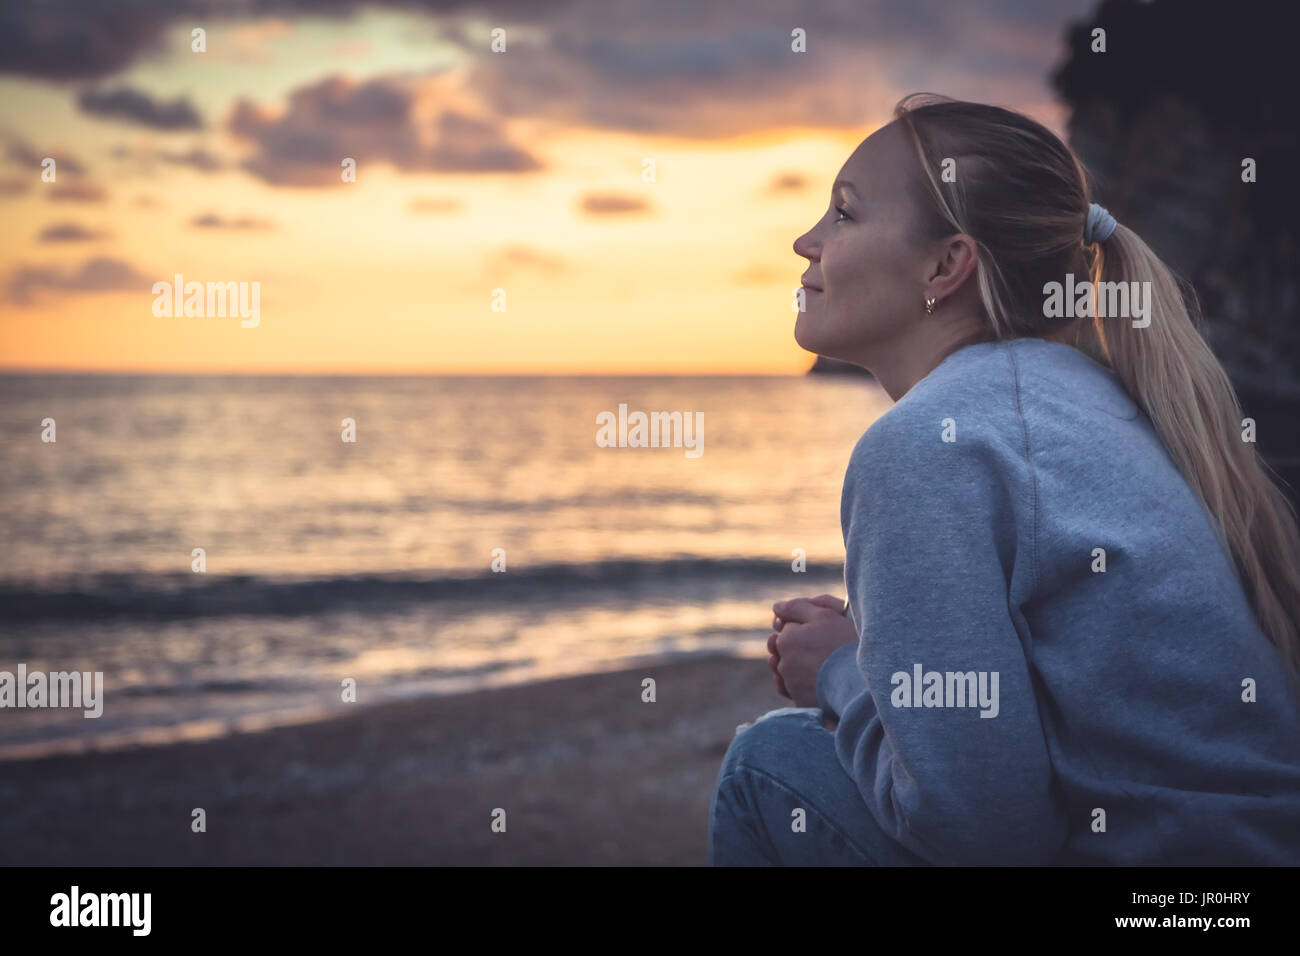 Pensive lonely smiling woman looking with hope into horizon during sunset at beach - Stock Image